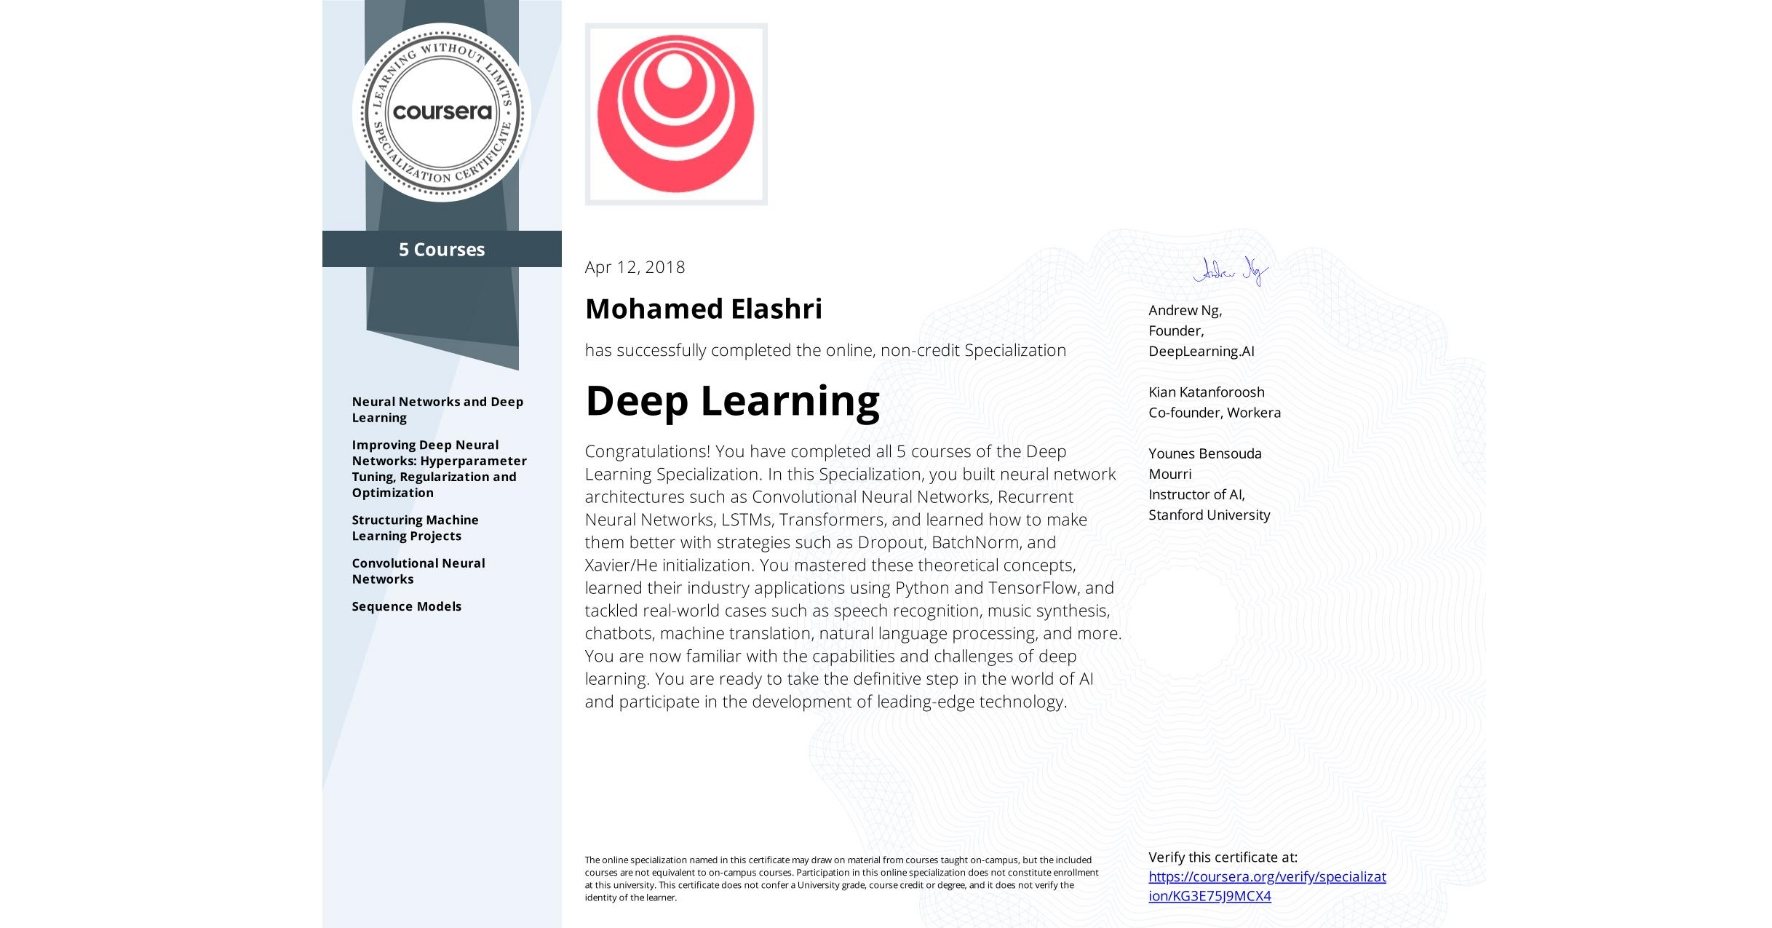 View certificate for Mohamed Elashri, Deep Learning, offered through Coursera. The Deep Learning Specialization is designed to prepare learners to participate in the development of cutting-edge AI technology, and to understand the capability, the challenges, and the consequences of the rise of deep learning. Through five interconnected courses, learners develop a profound knowledge of the hottest AI algorithms, mastering deep learning from its foundations (neural networks) to its industry applications (Computer Vision, Natural Language Processing, Speech Recognition, etc.).